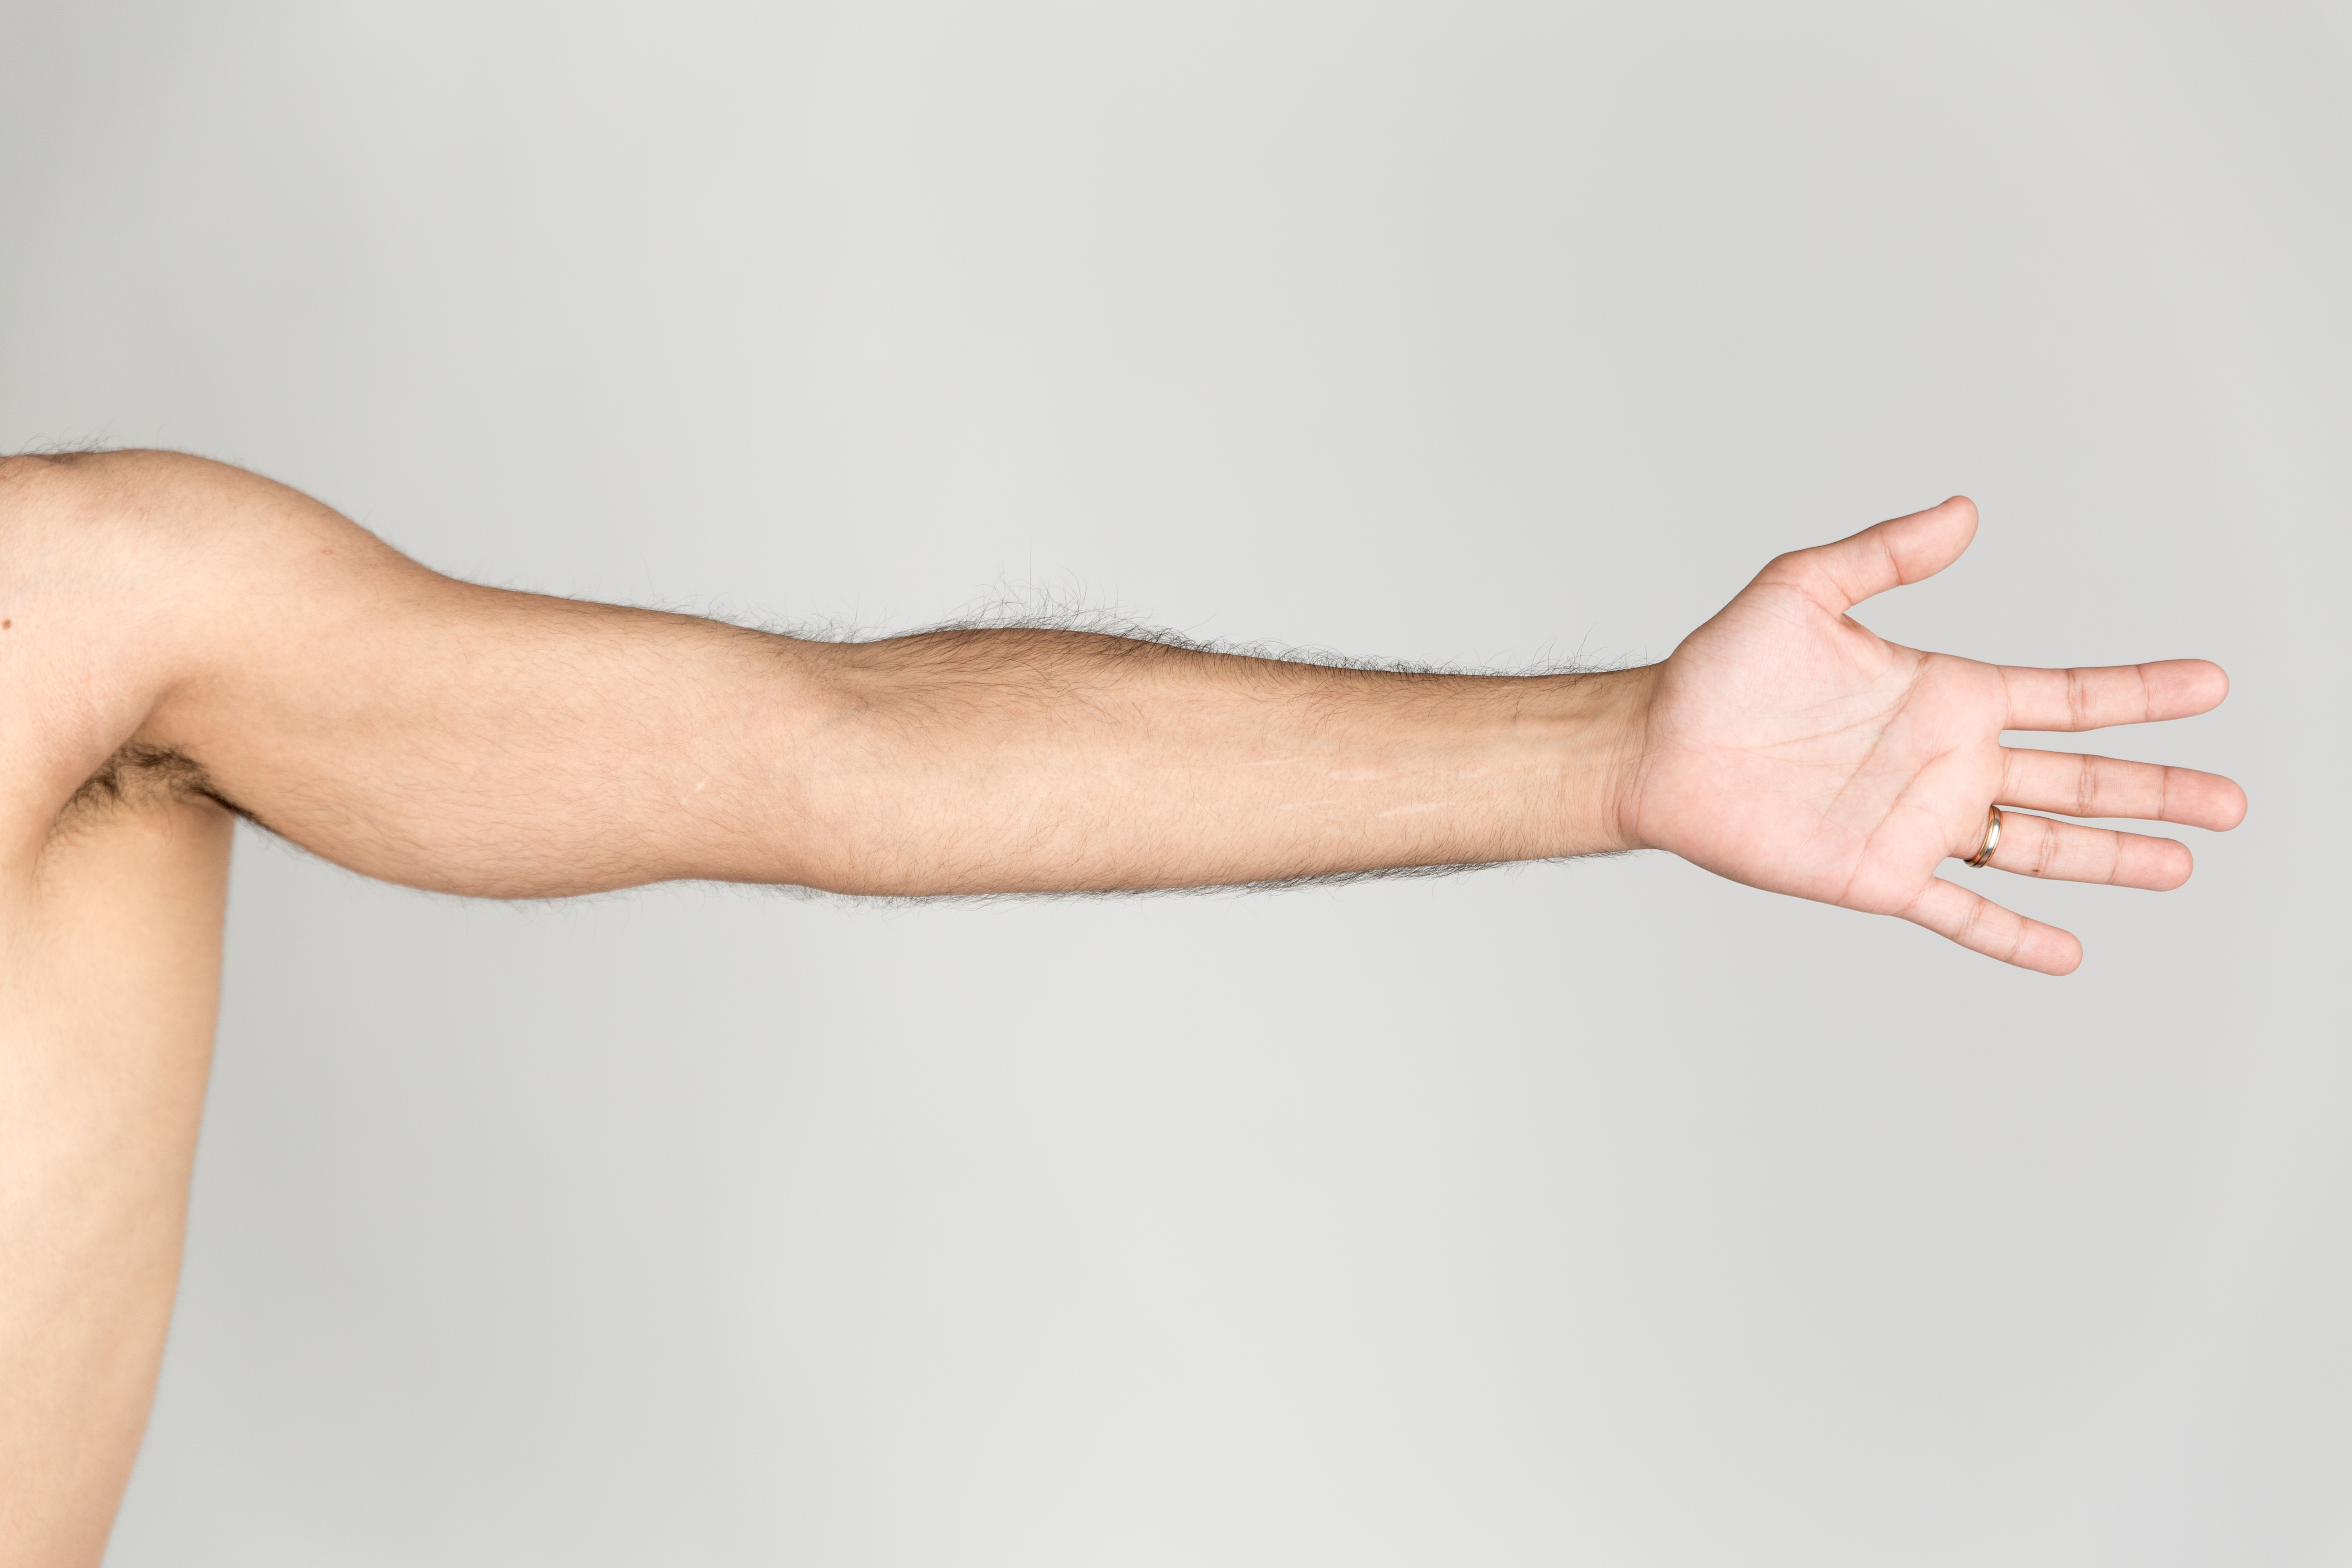 file extended arm jpg wikimedia commons